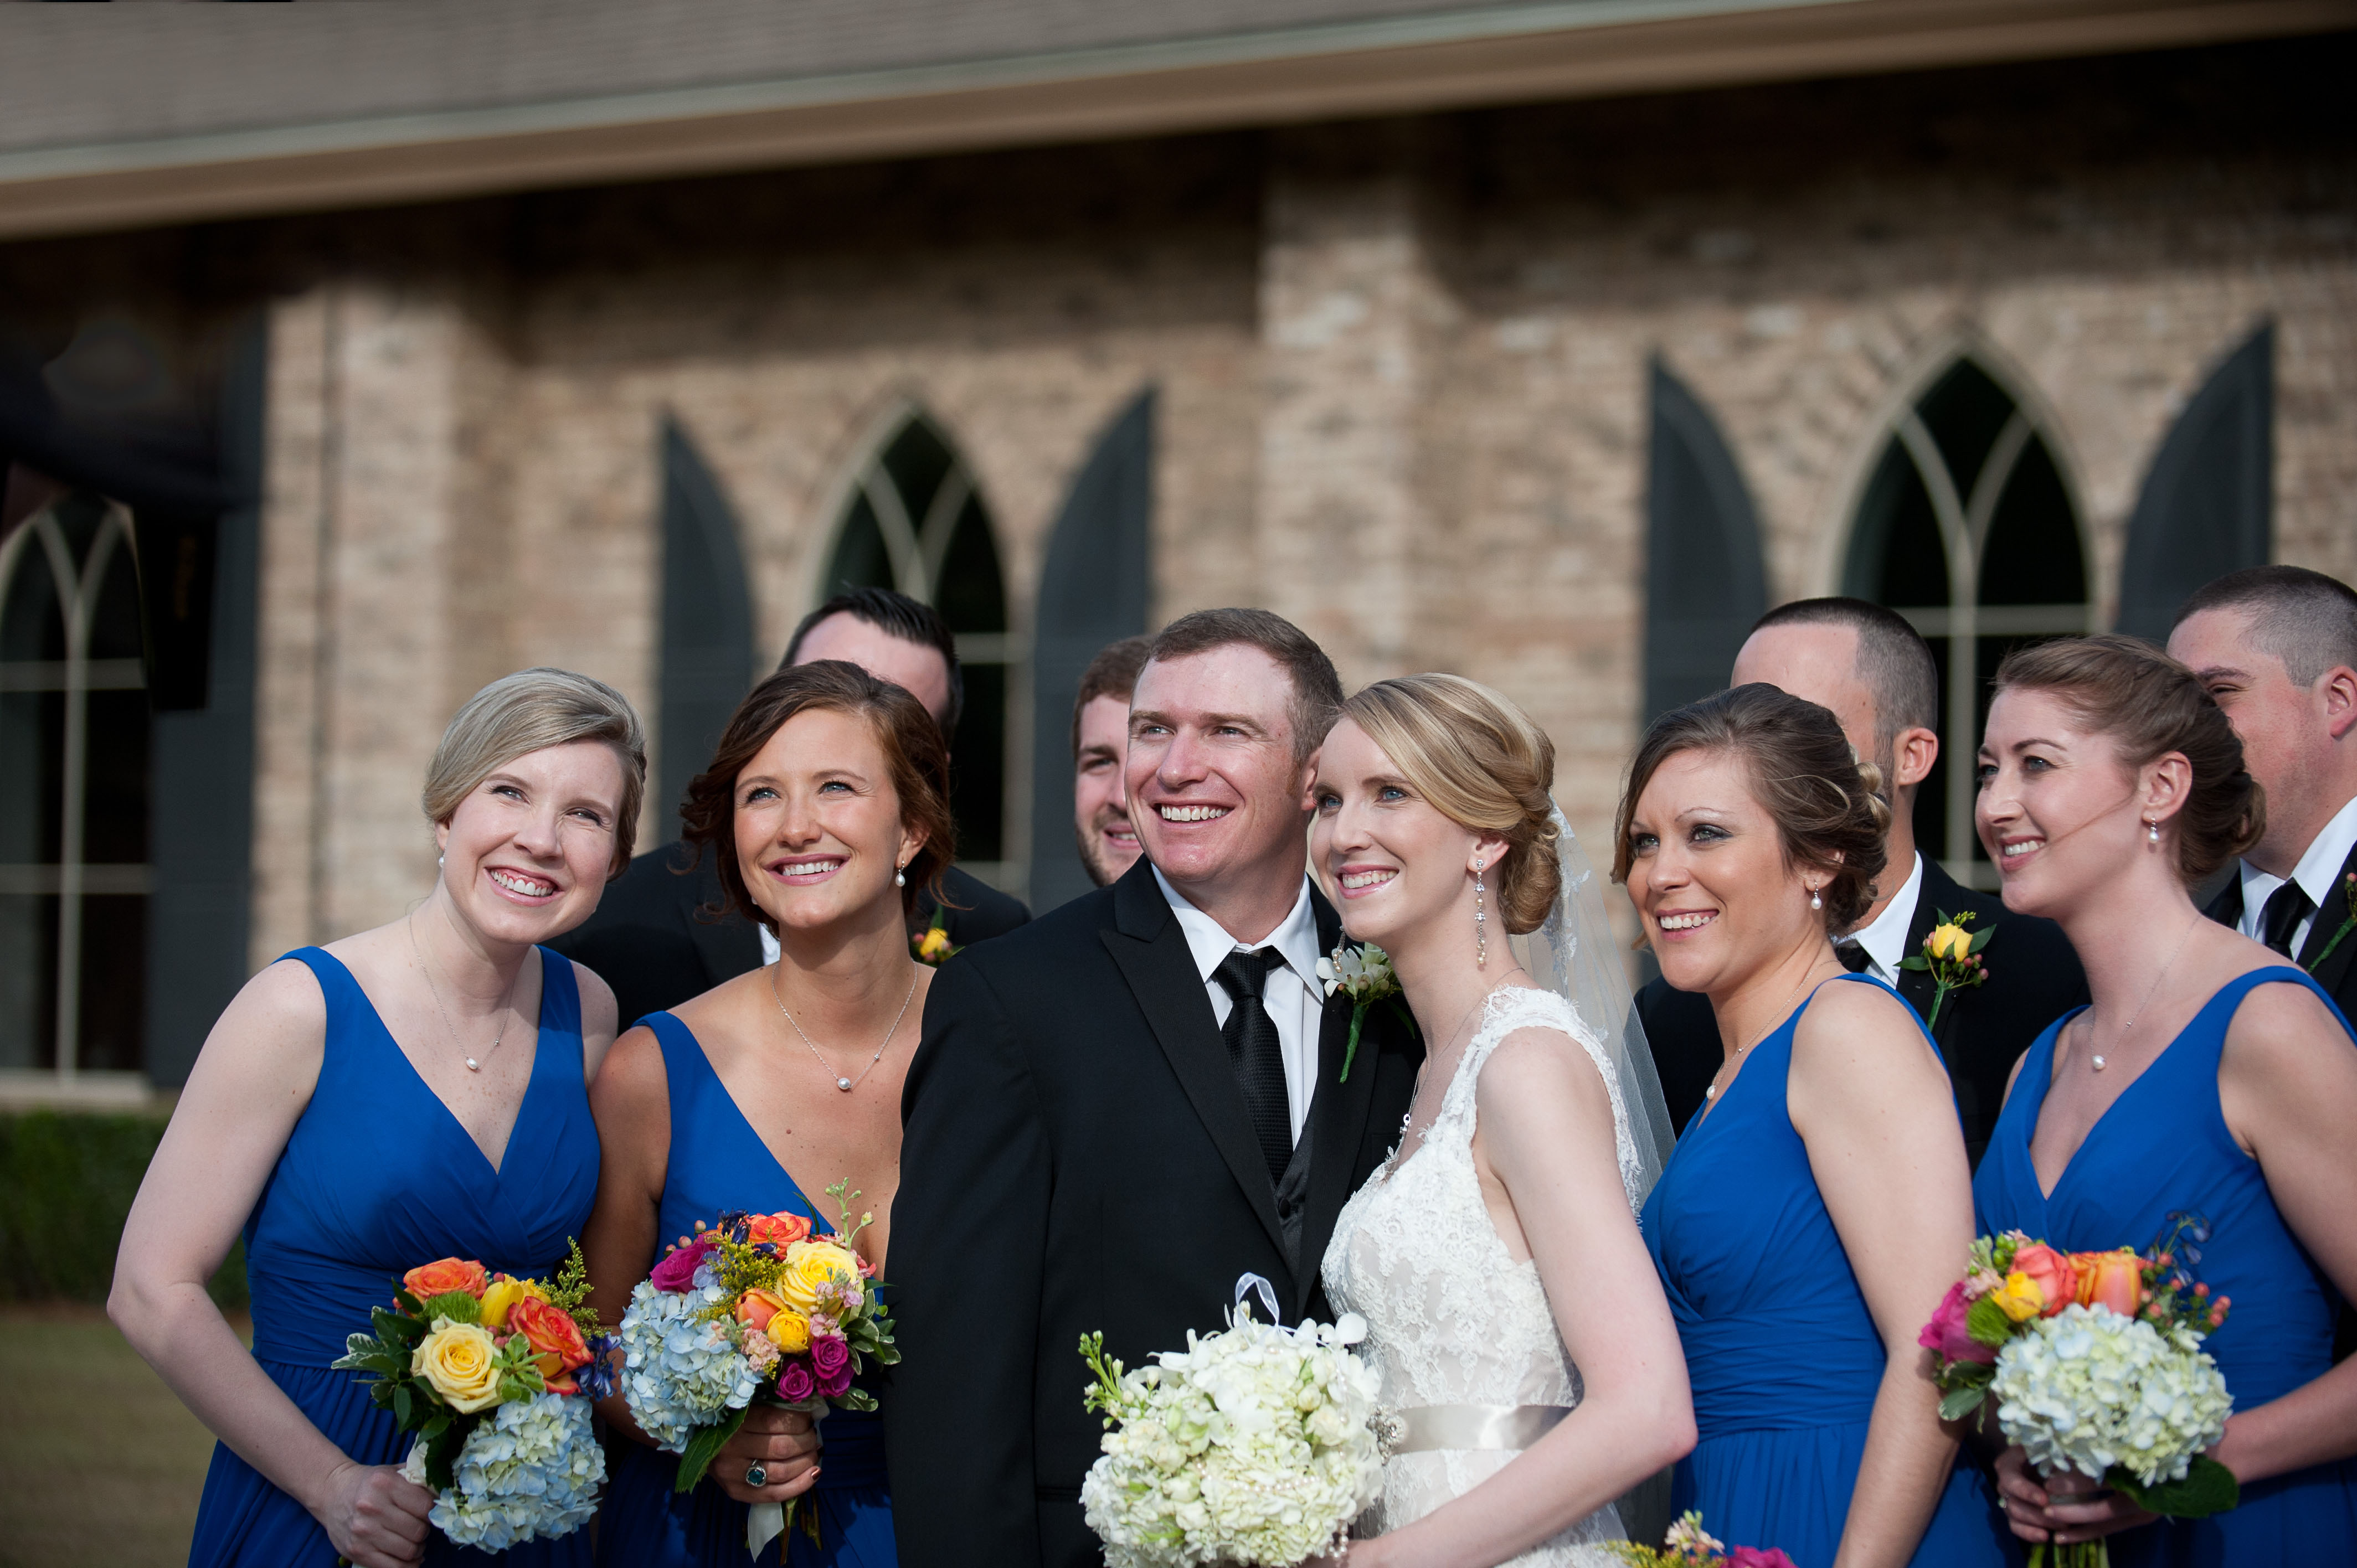 © 2015 Barrett Photography: Michael & Dianne ALL RIGHTS RESERVED www.barrettphotography.com